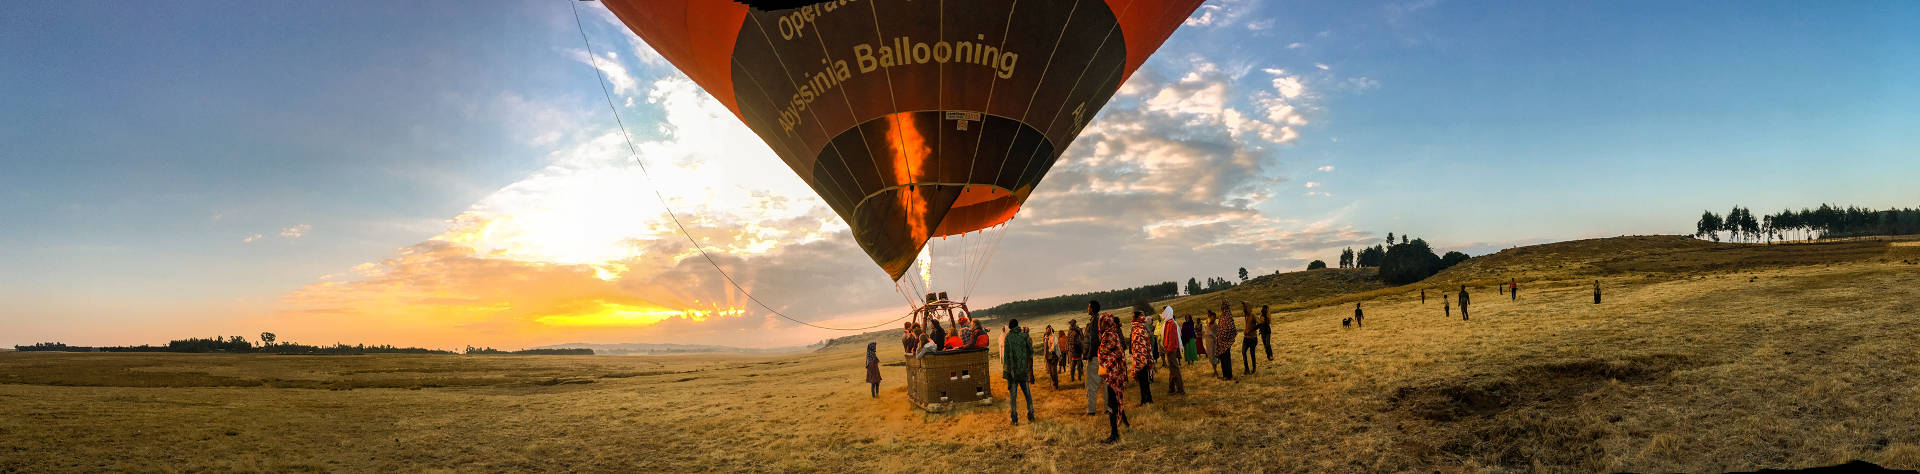 Balloon flights in Ethiopia with Abyssinia Ballooning